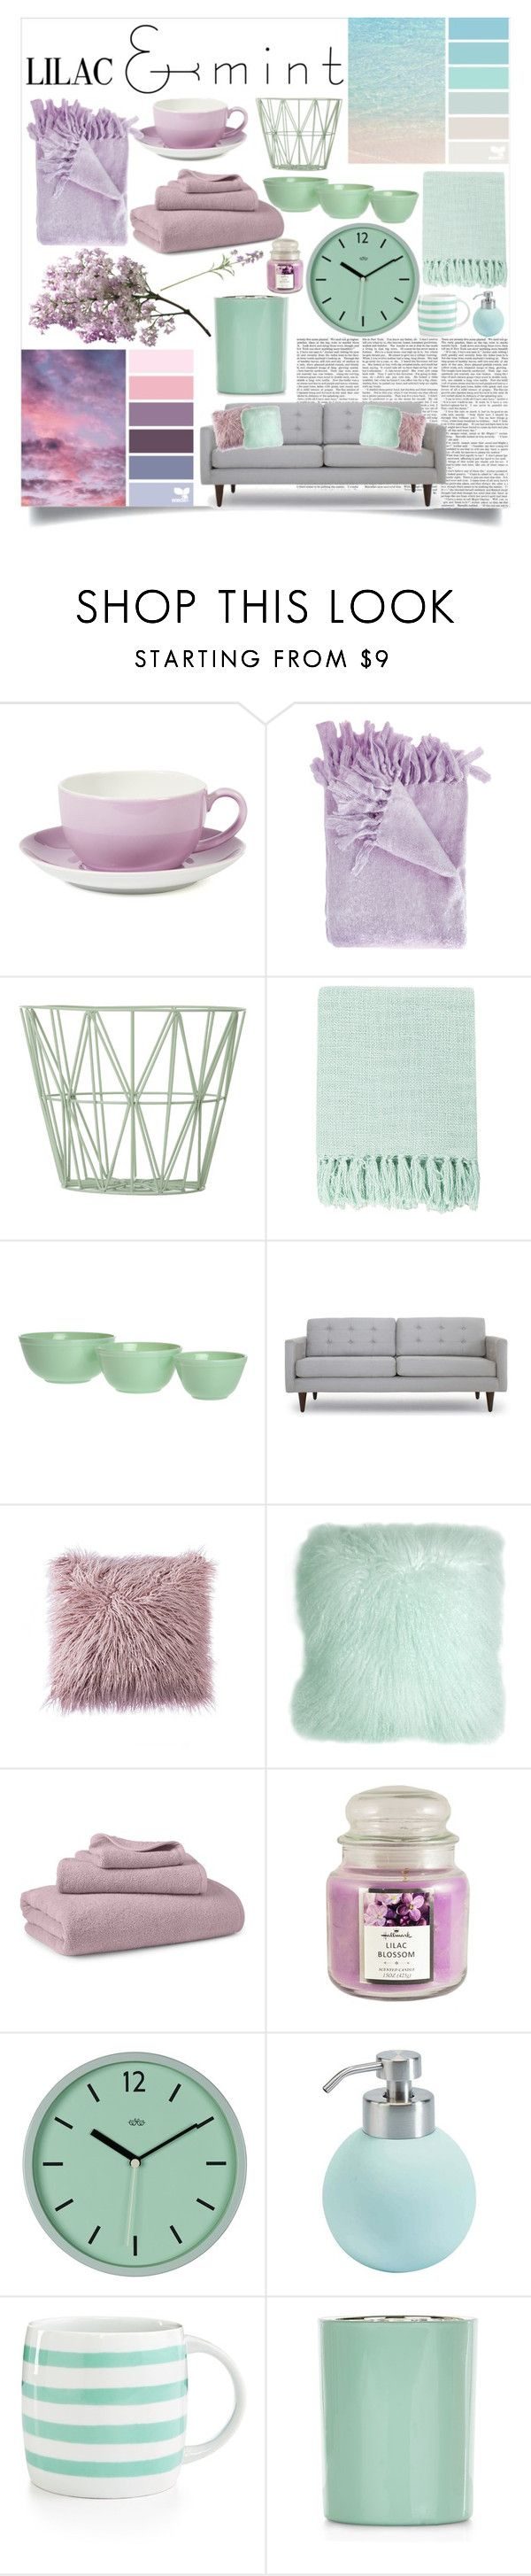 """Lilac And Mint"" by mayafunnyface ❤ liked on Polyvore featuring interior, interiors, interior design, home, home decor, interior decorating, Dibbern, ferm LIVING, Surya and Seed Design"